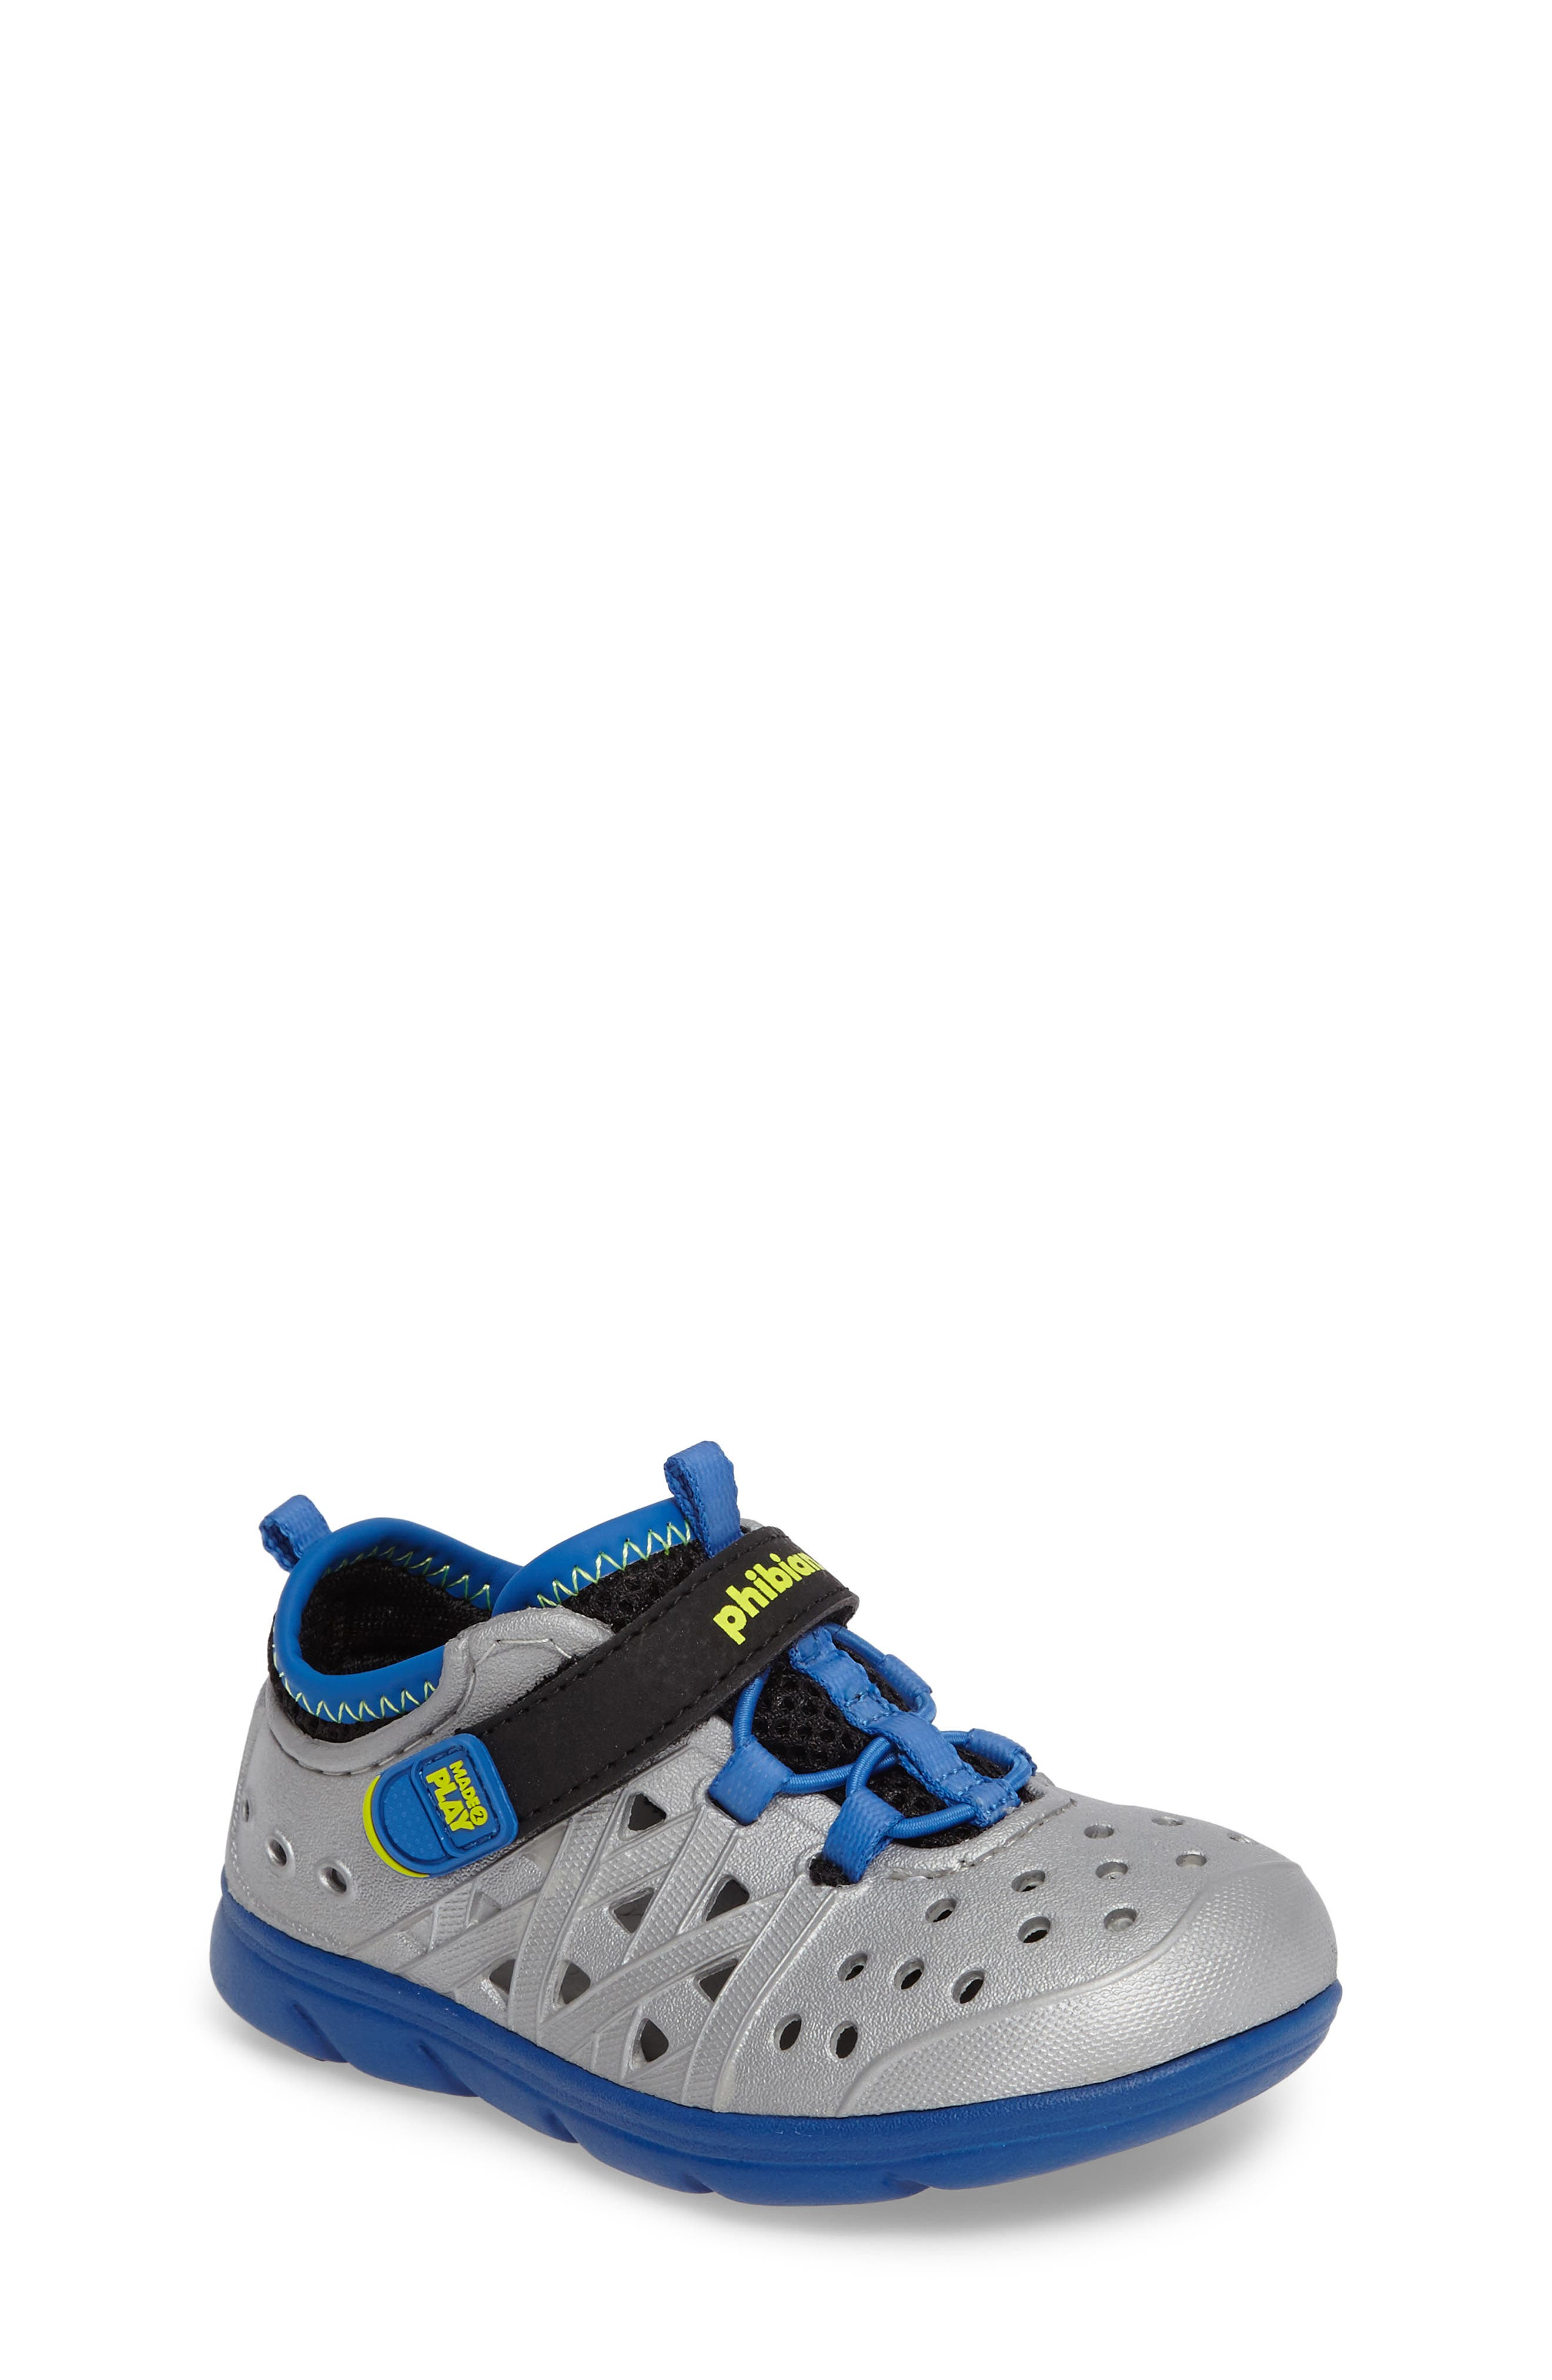 Made2Play<sup>®</sup> Phibian Sneaker,                         Main,                         color, Silver Metallic